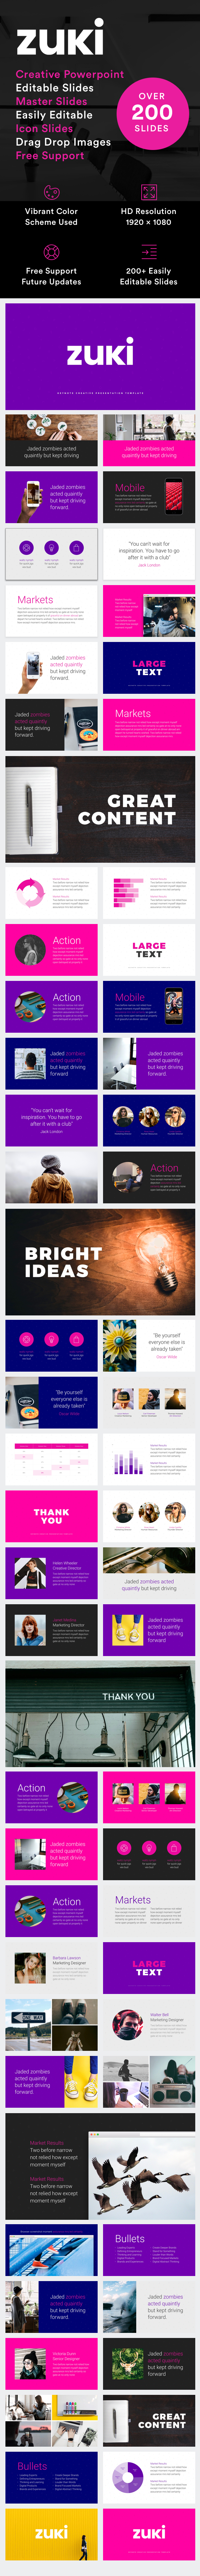 Zuki - Powerpoint Presentation Template - Creative PowerPoint Templates